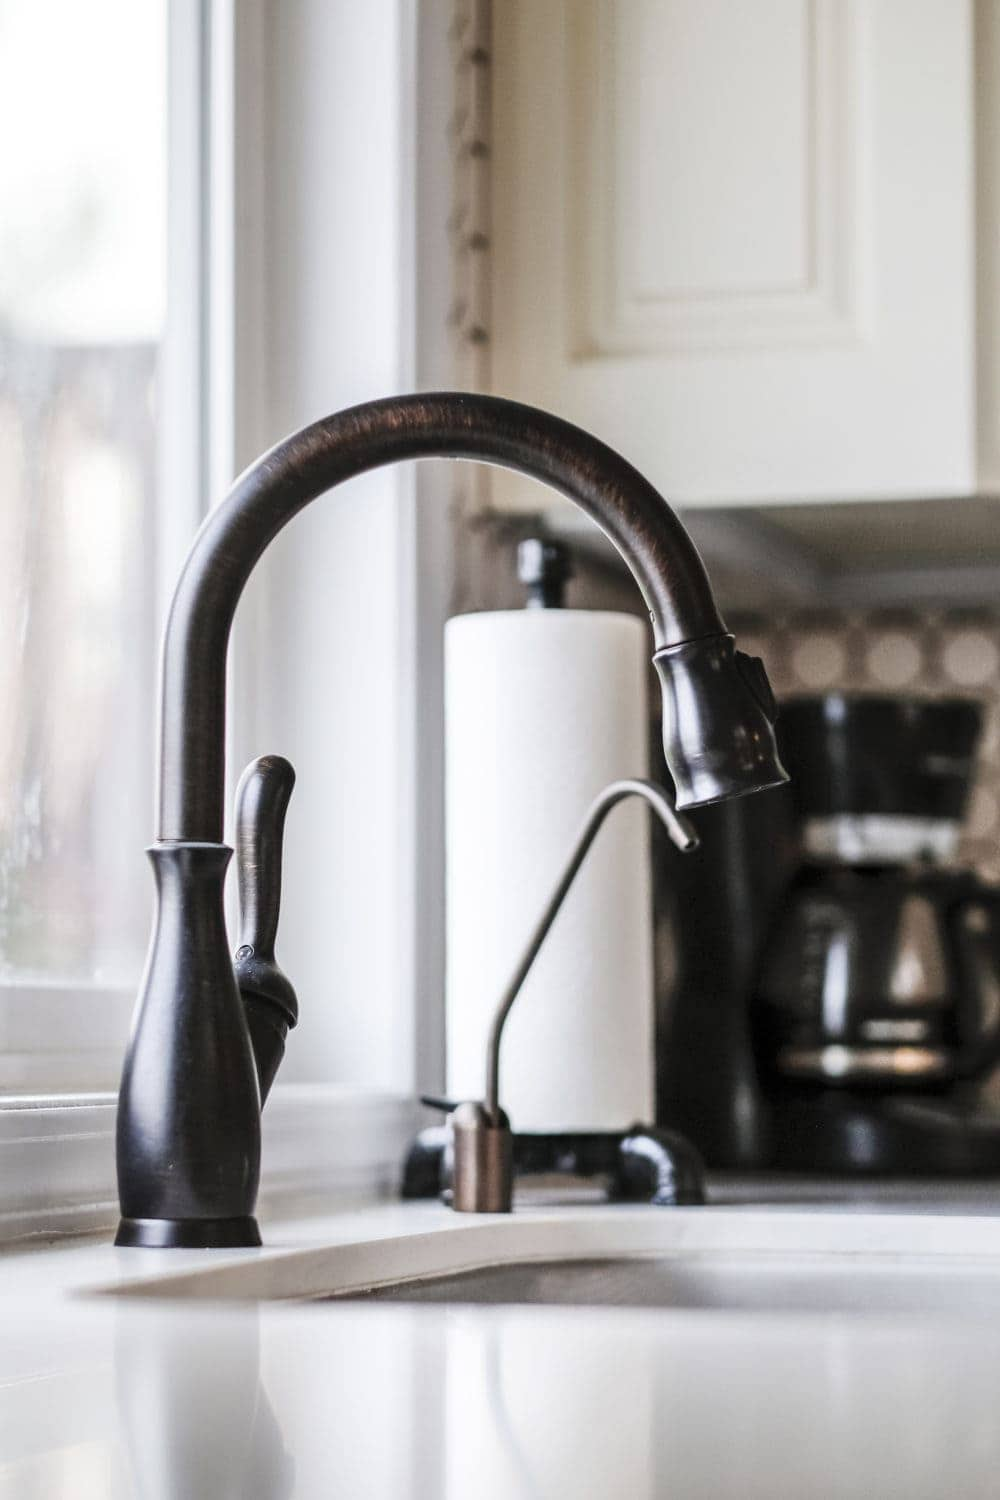 Oil rubbed bronze goose neck faucet installed over a farmhosue undermount sink